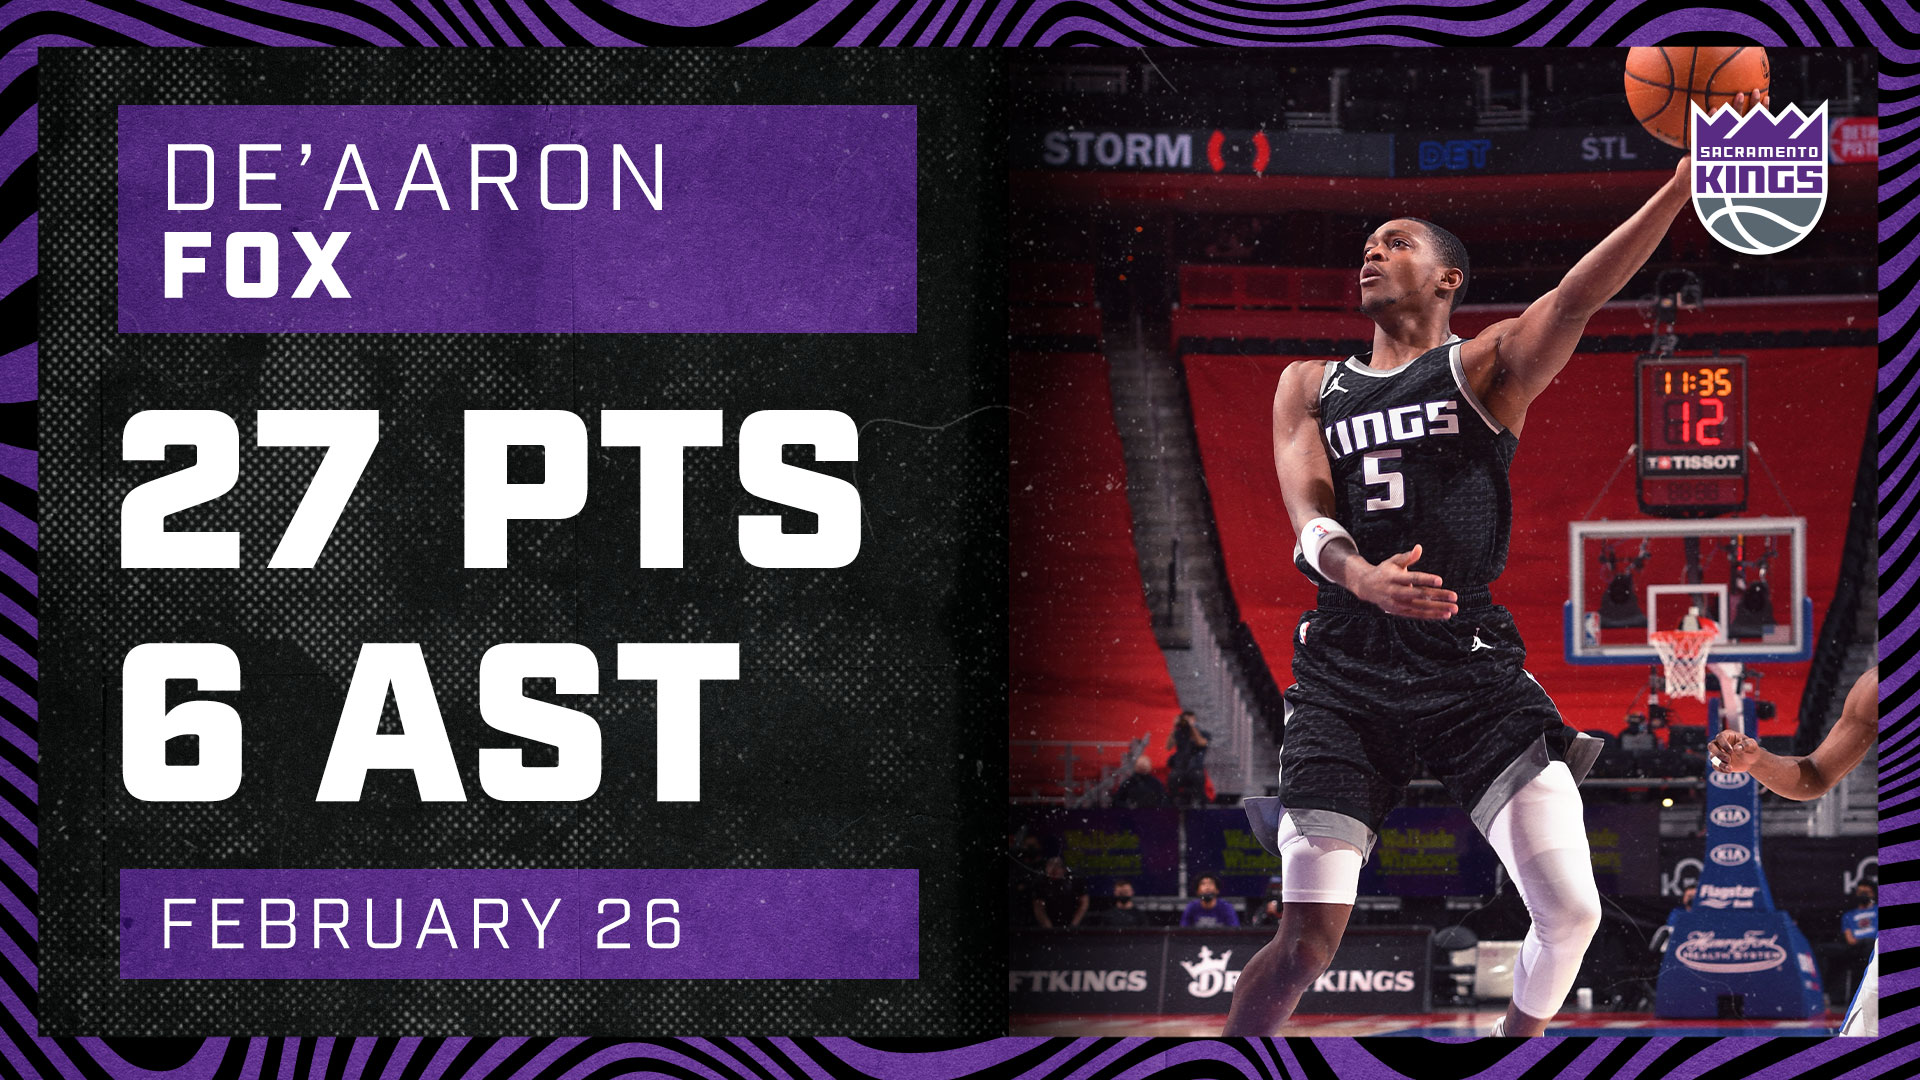 Swipa was unstoppable in the Motor City Matchup | Kings vs Pistons 2.26.21